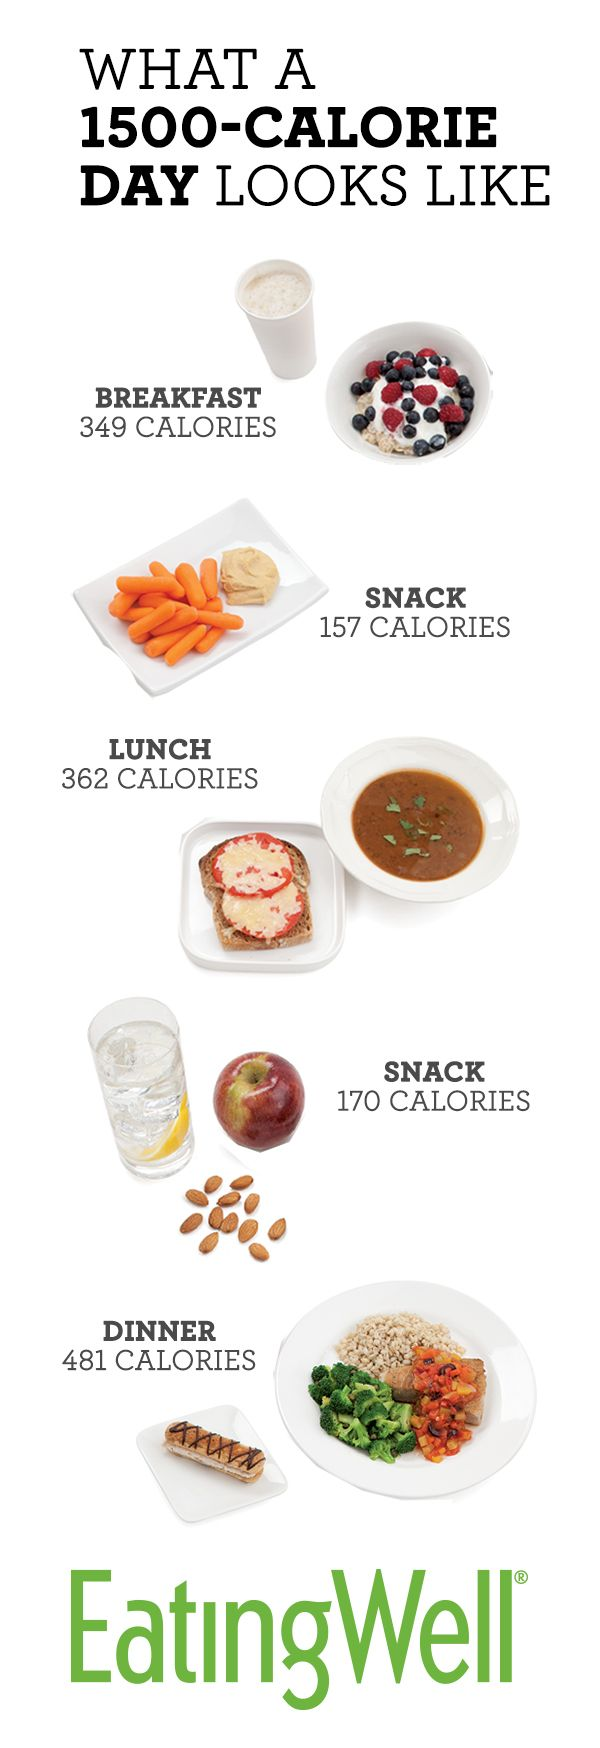 Most people will lose weight on a daily diet of 1,500 calories, which is the total calorie count for all the food pictured here. Lose up to 10lbs in only *3 Days*